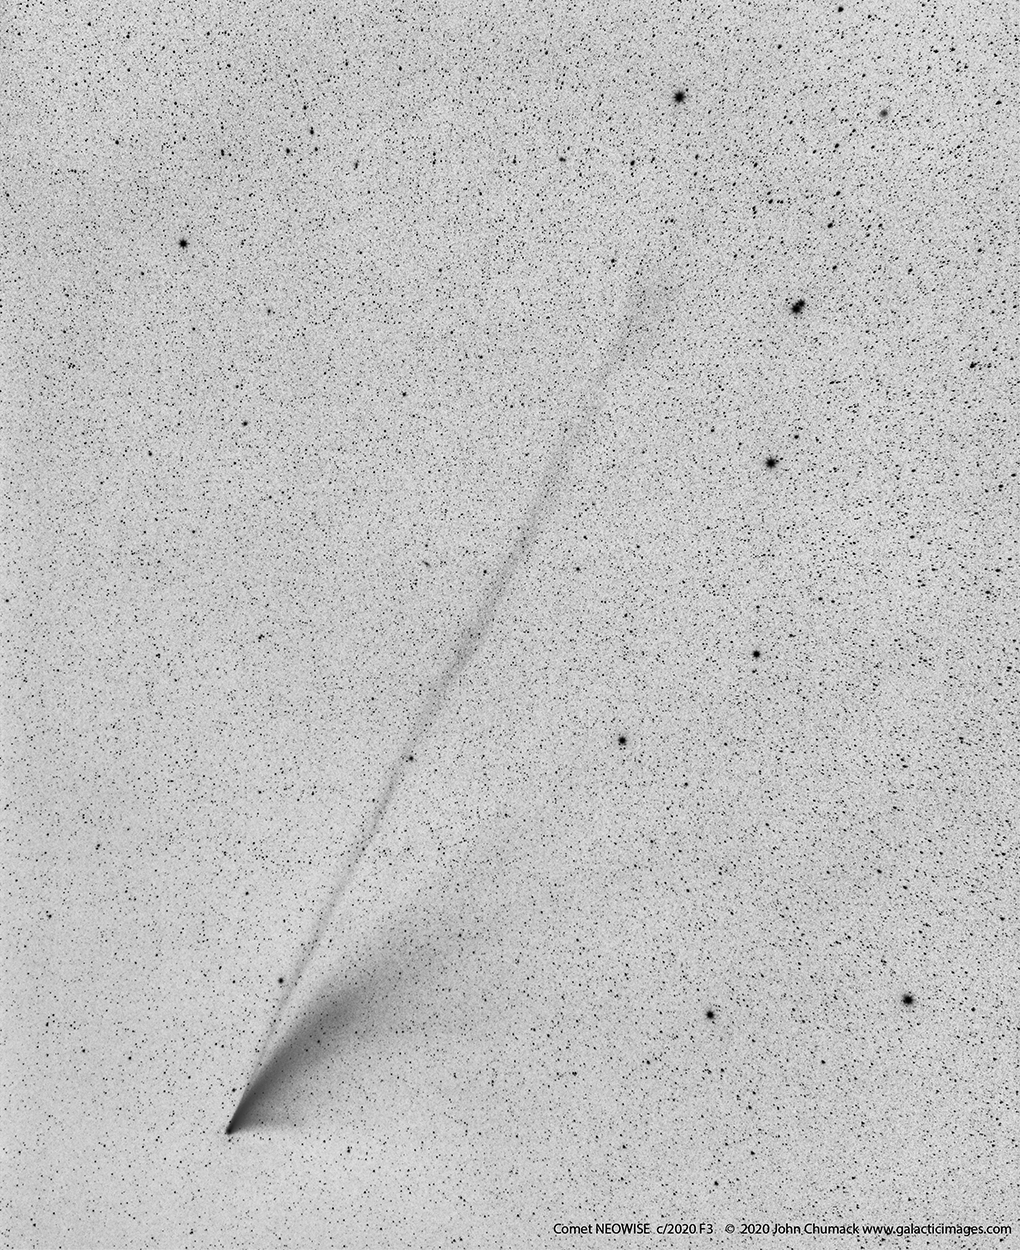 Comet NEOWISE c/2020 F3, as it moved past the Big Dipper